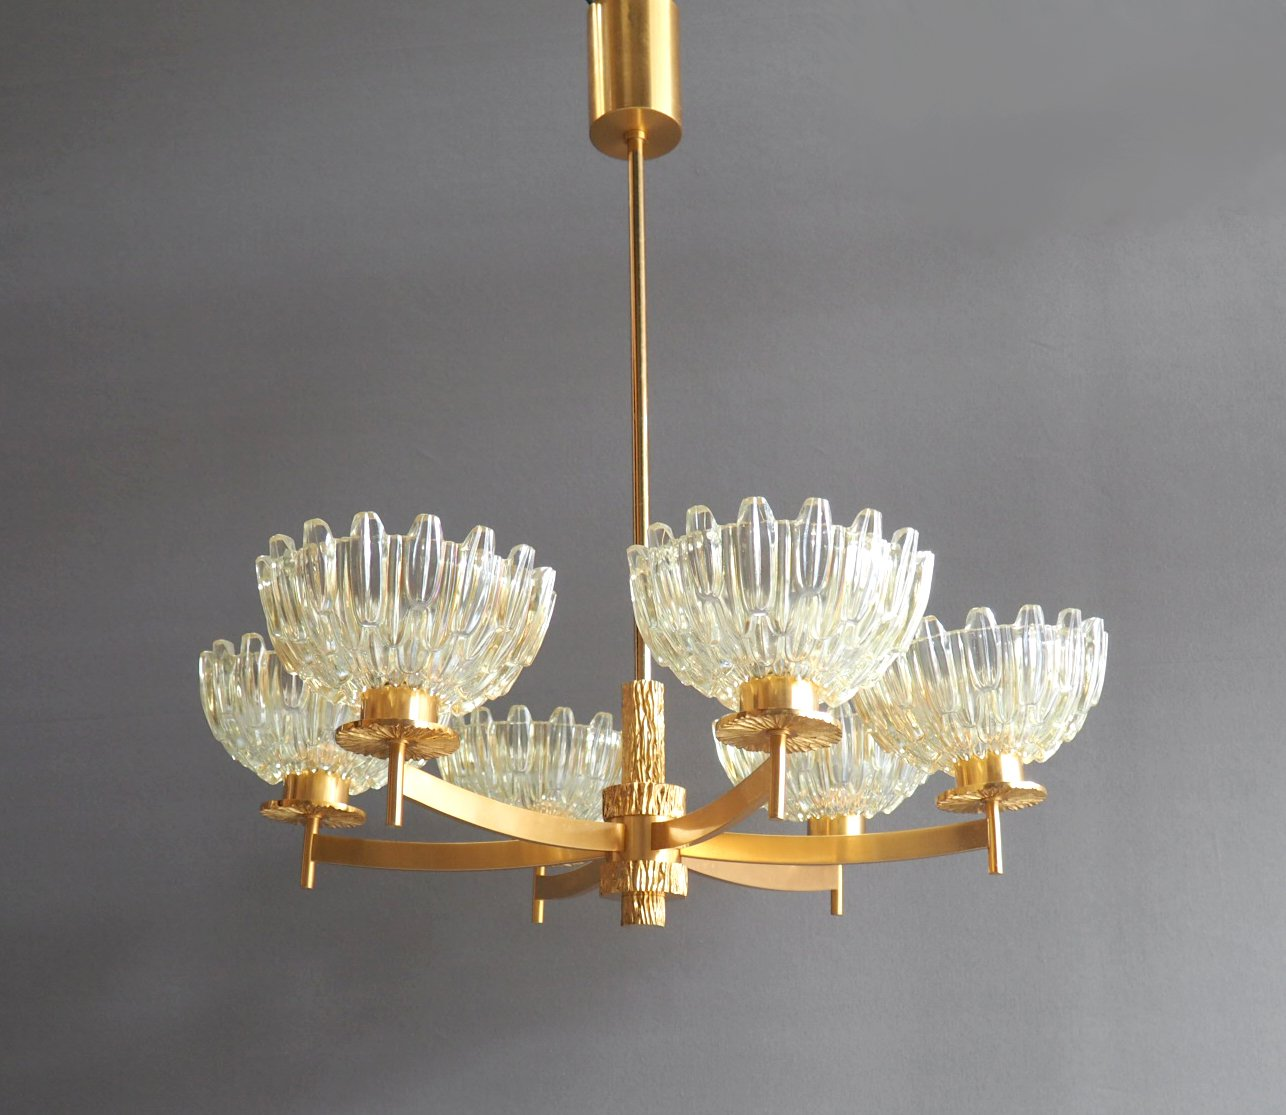 Mid century six armed gold plated chandelier for sale at pamono mid century six armed gold plated chandelier aloadofball Choice Image